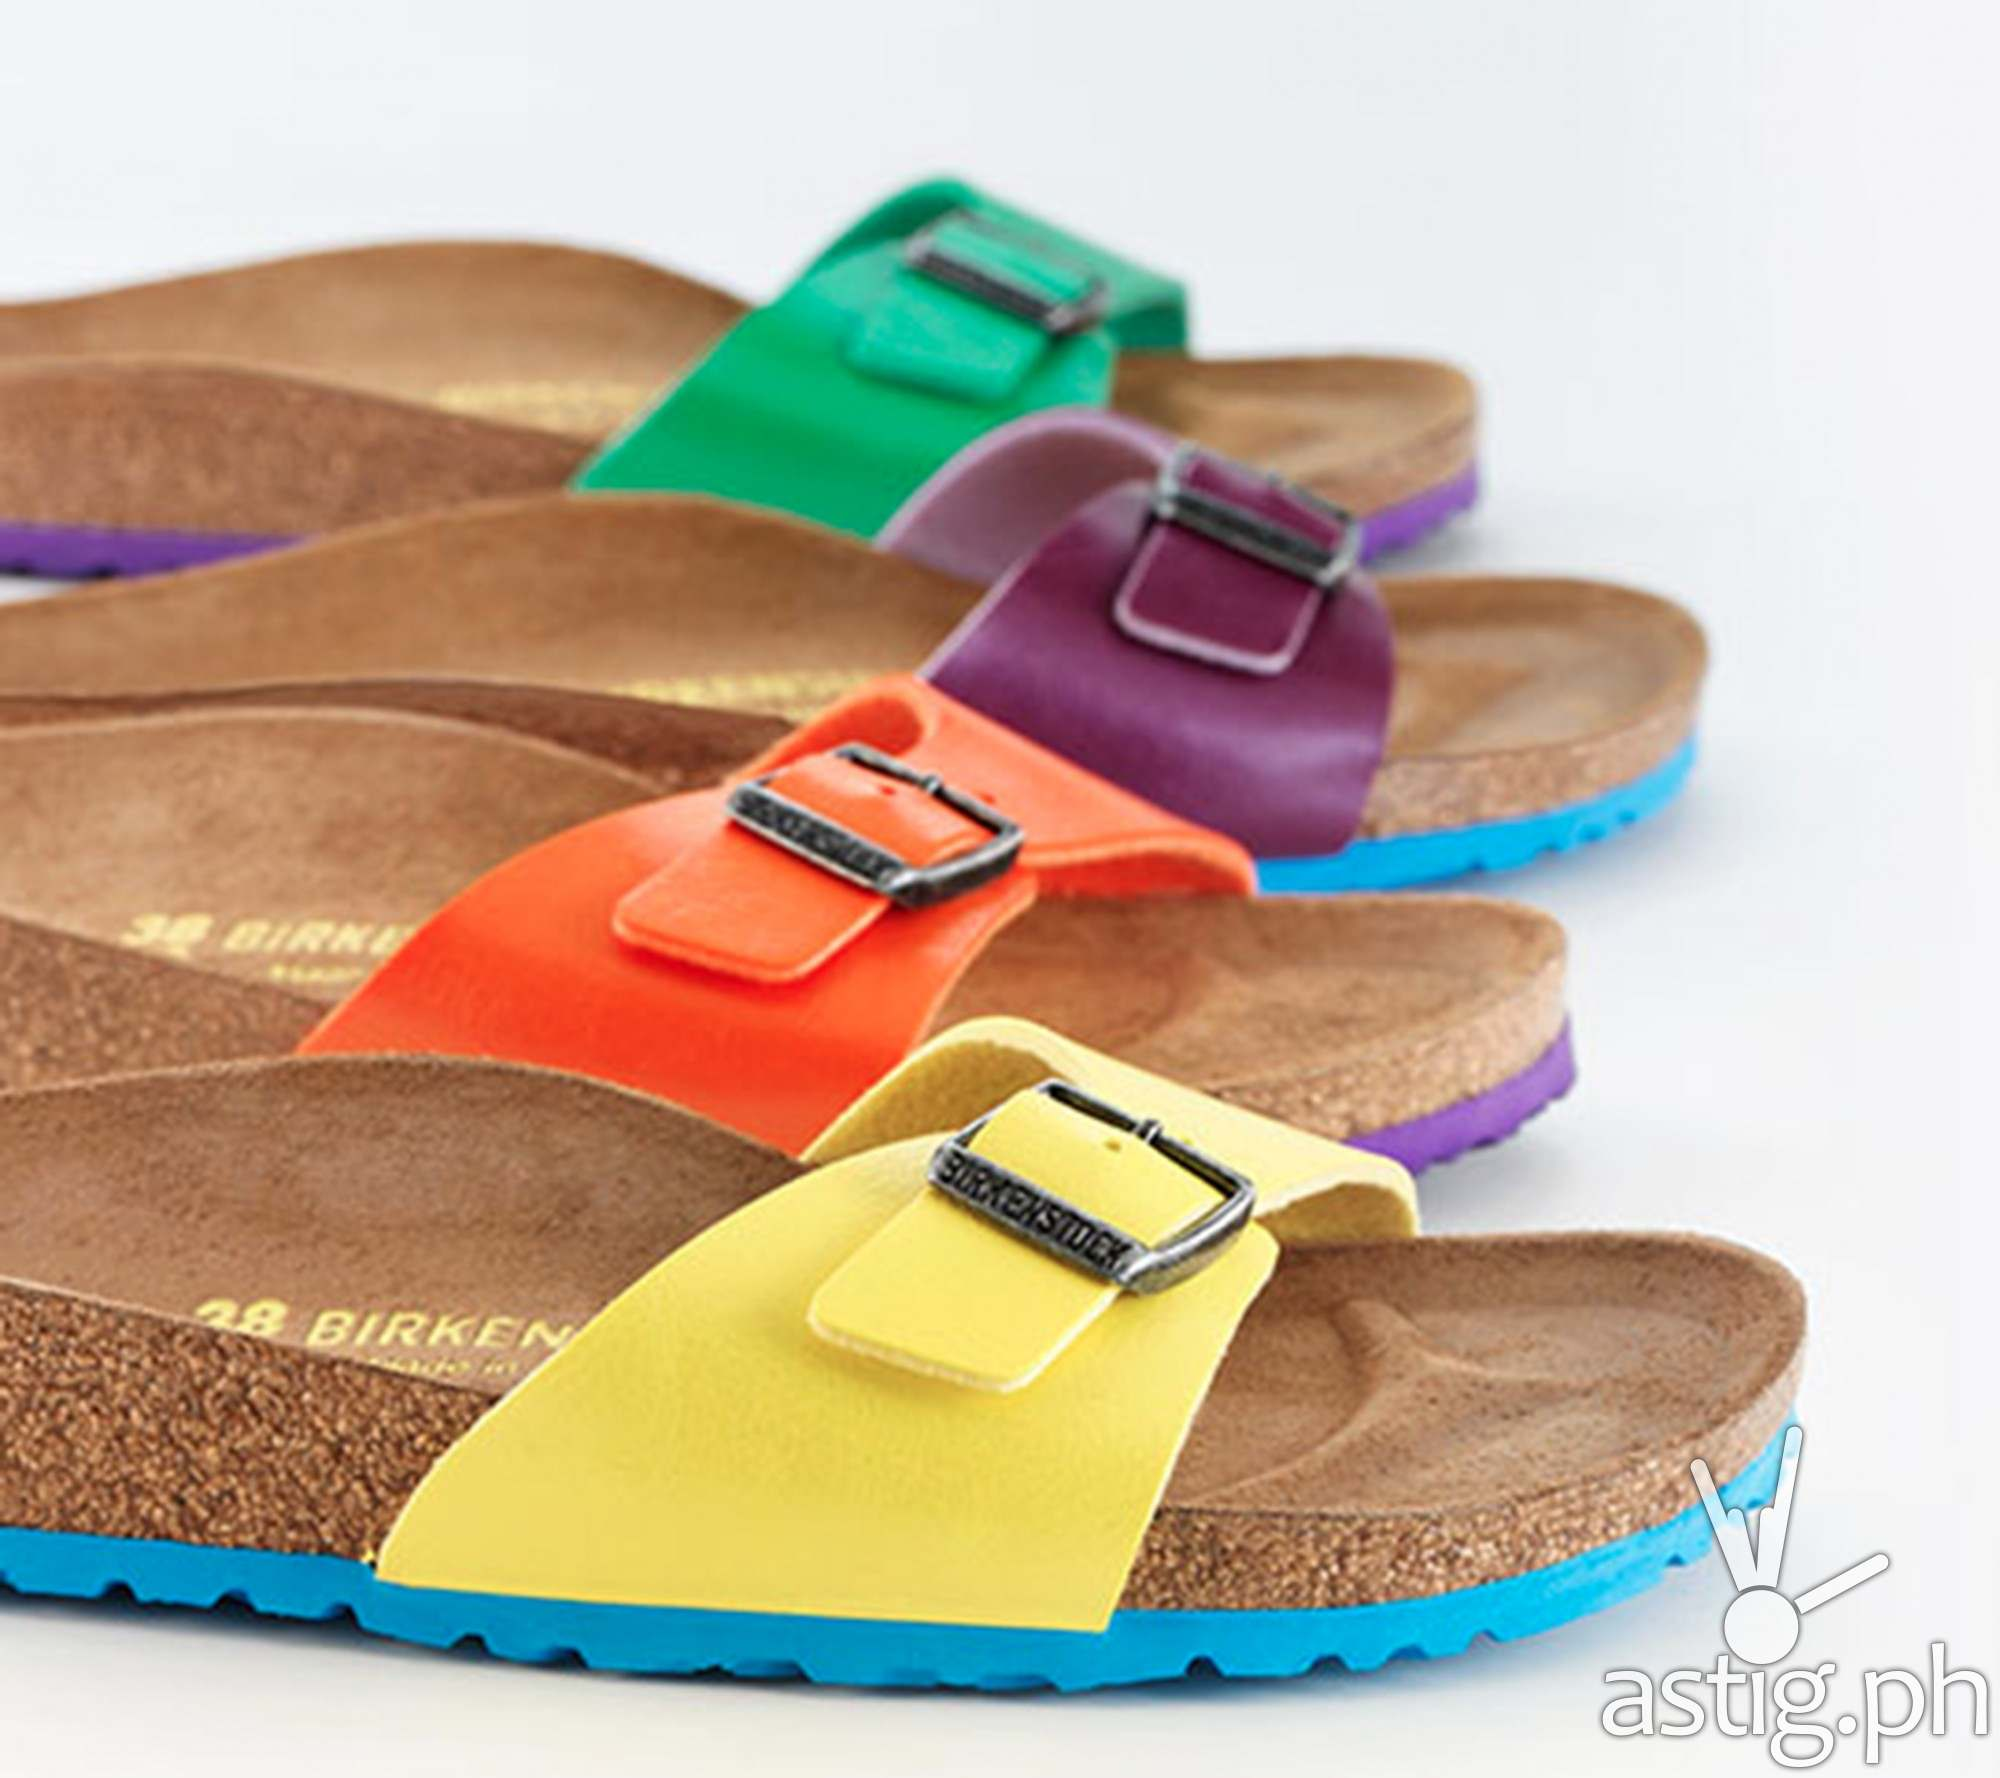 Super Birkenstock sandals and shoes: comfortable and sturdy   ASTIG.PH VH-91